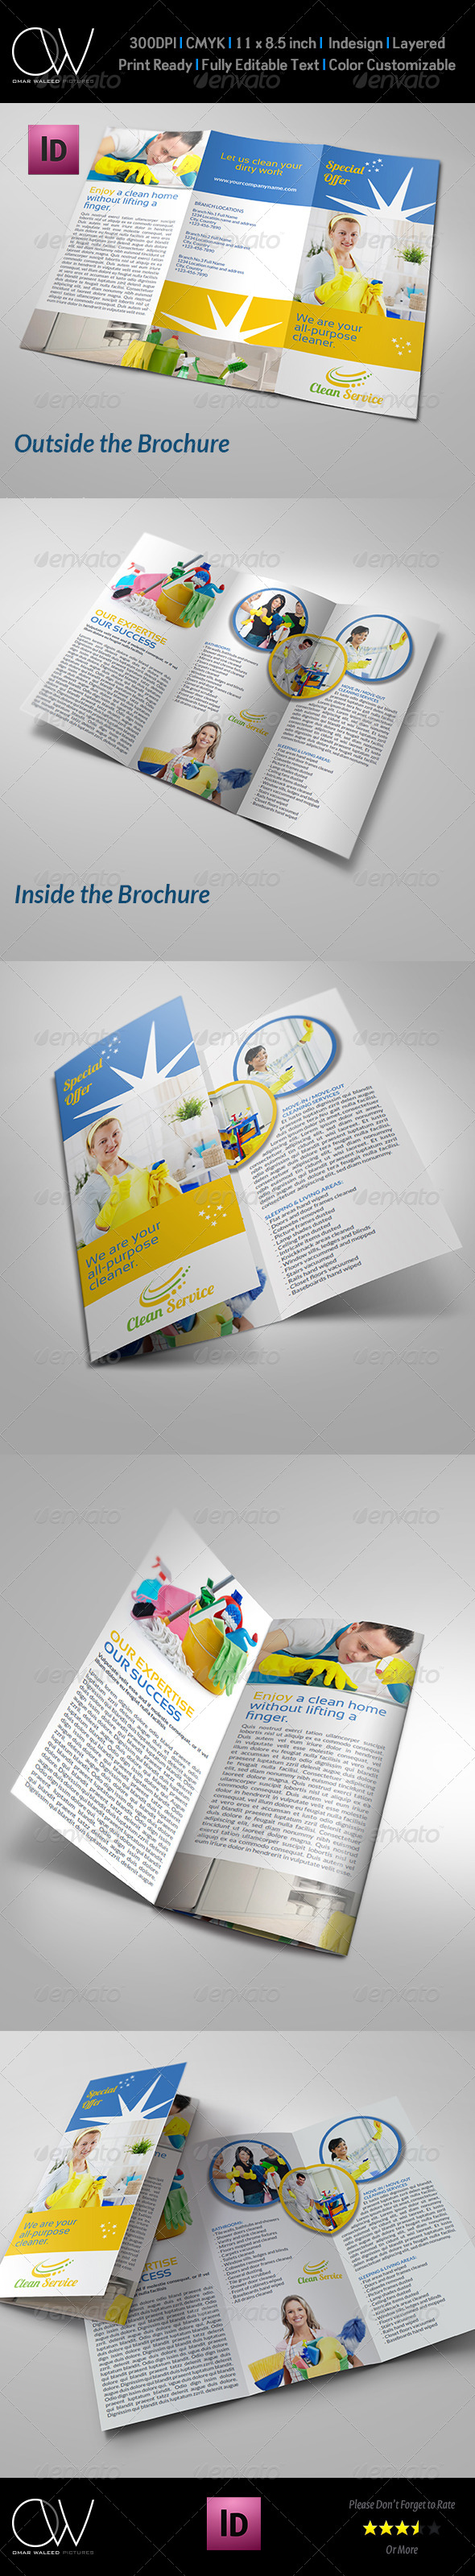 Cleaning Services Company Brochure Tri-Fo Vol.2 - Corporate Brochures